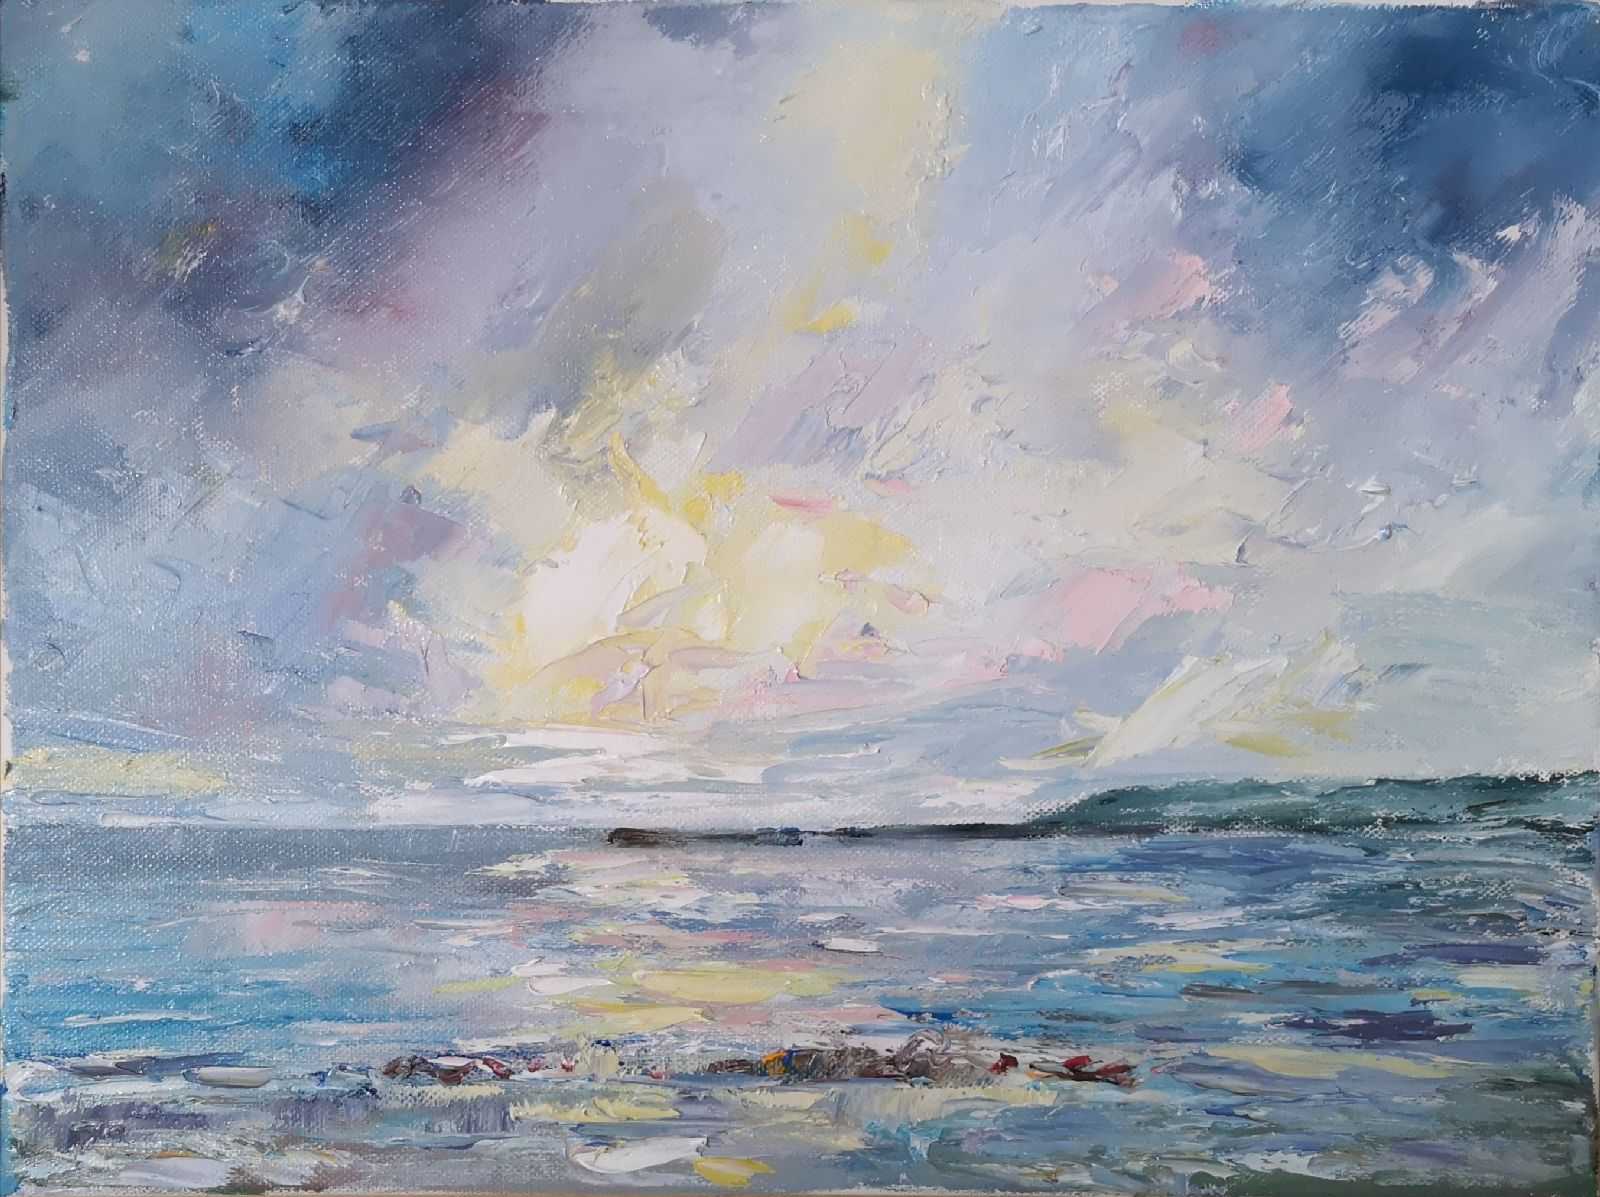 Eithne Ryan - Early Morning Light 3